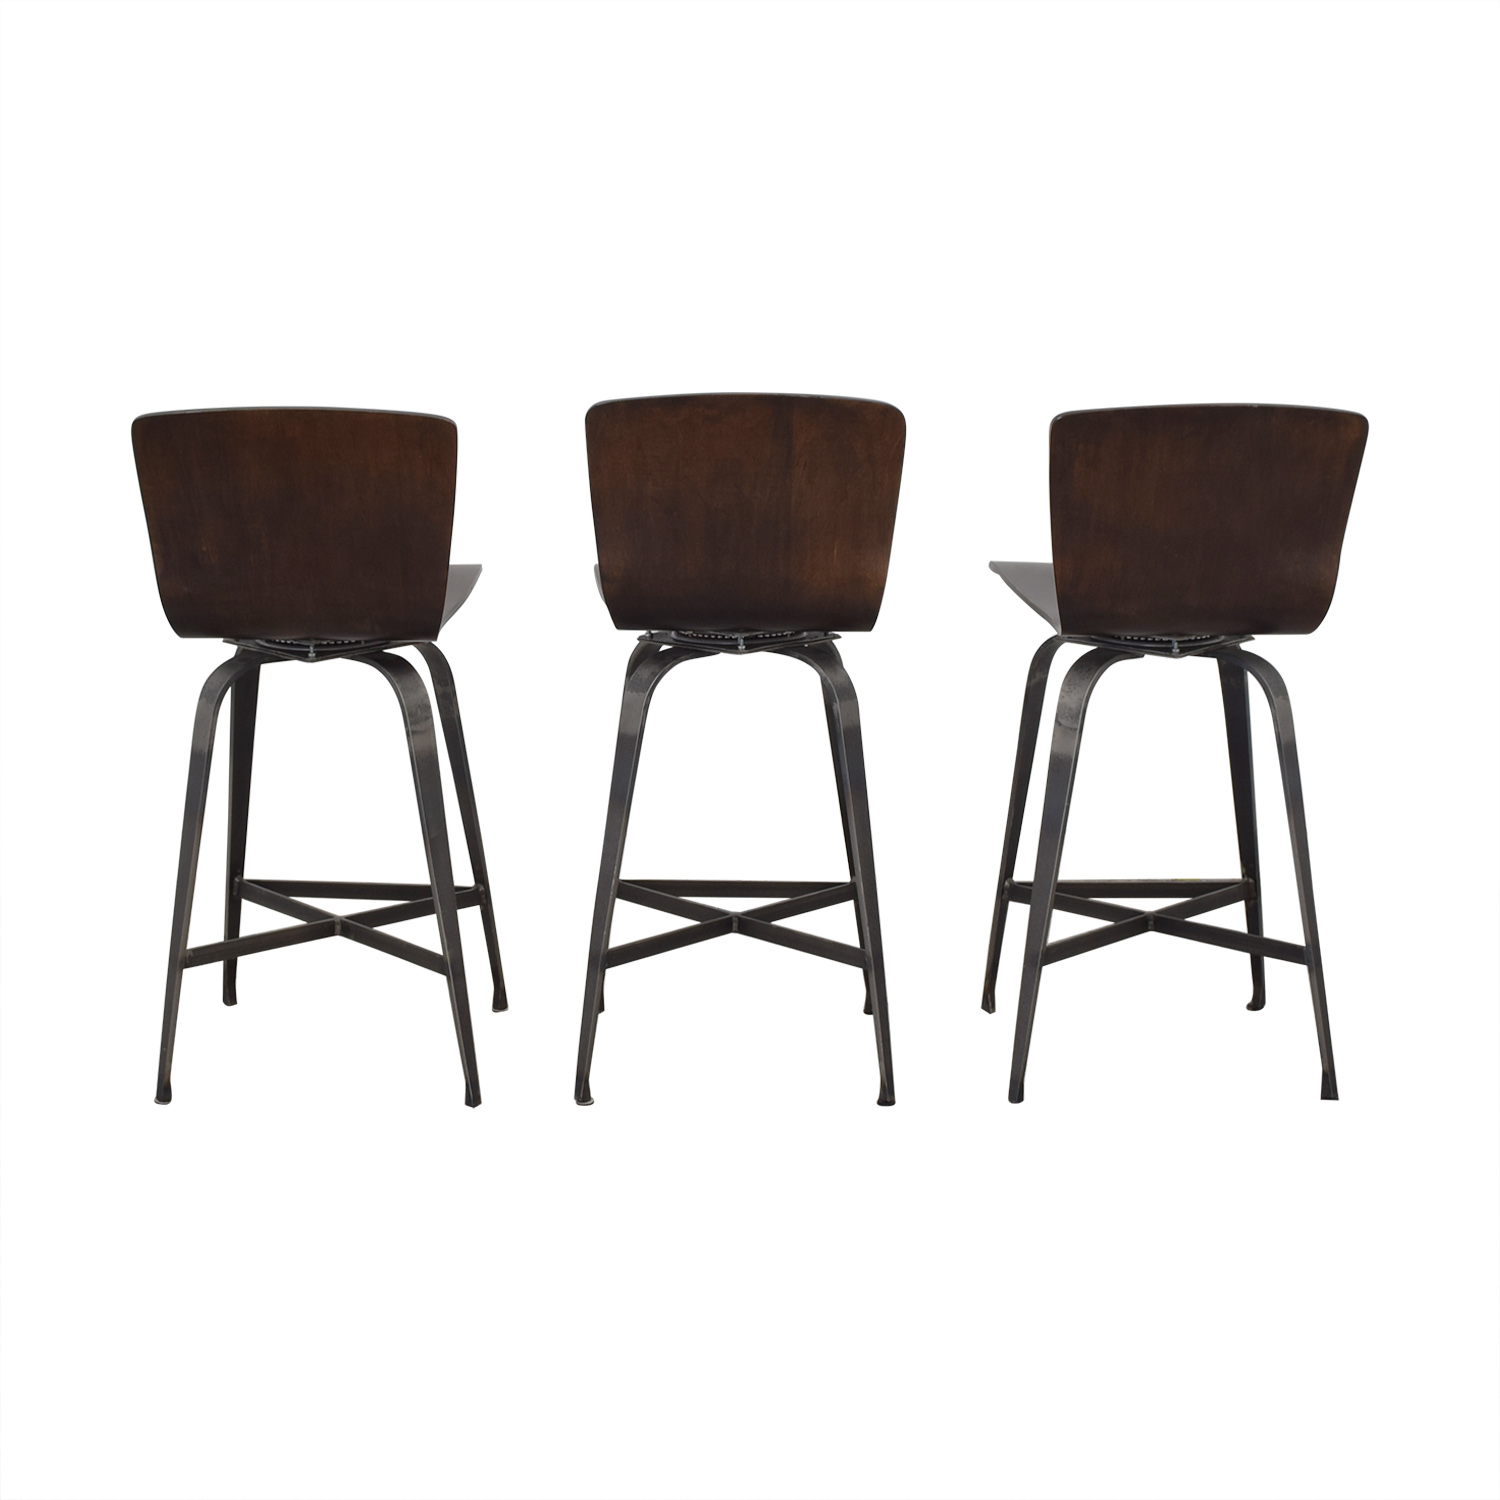 Charleston Forge Charleston Forge Fresno Swivel Counterstools Chairs